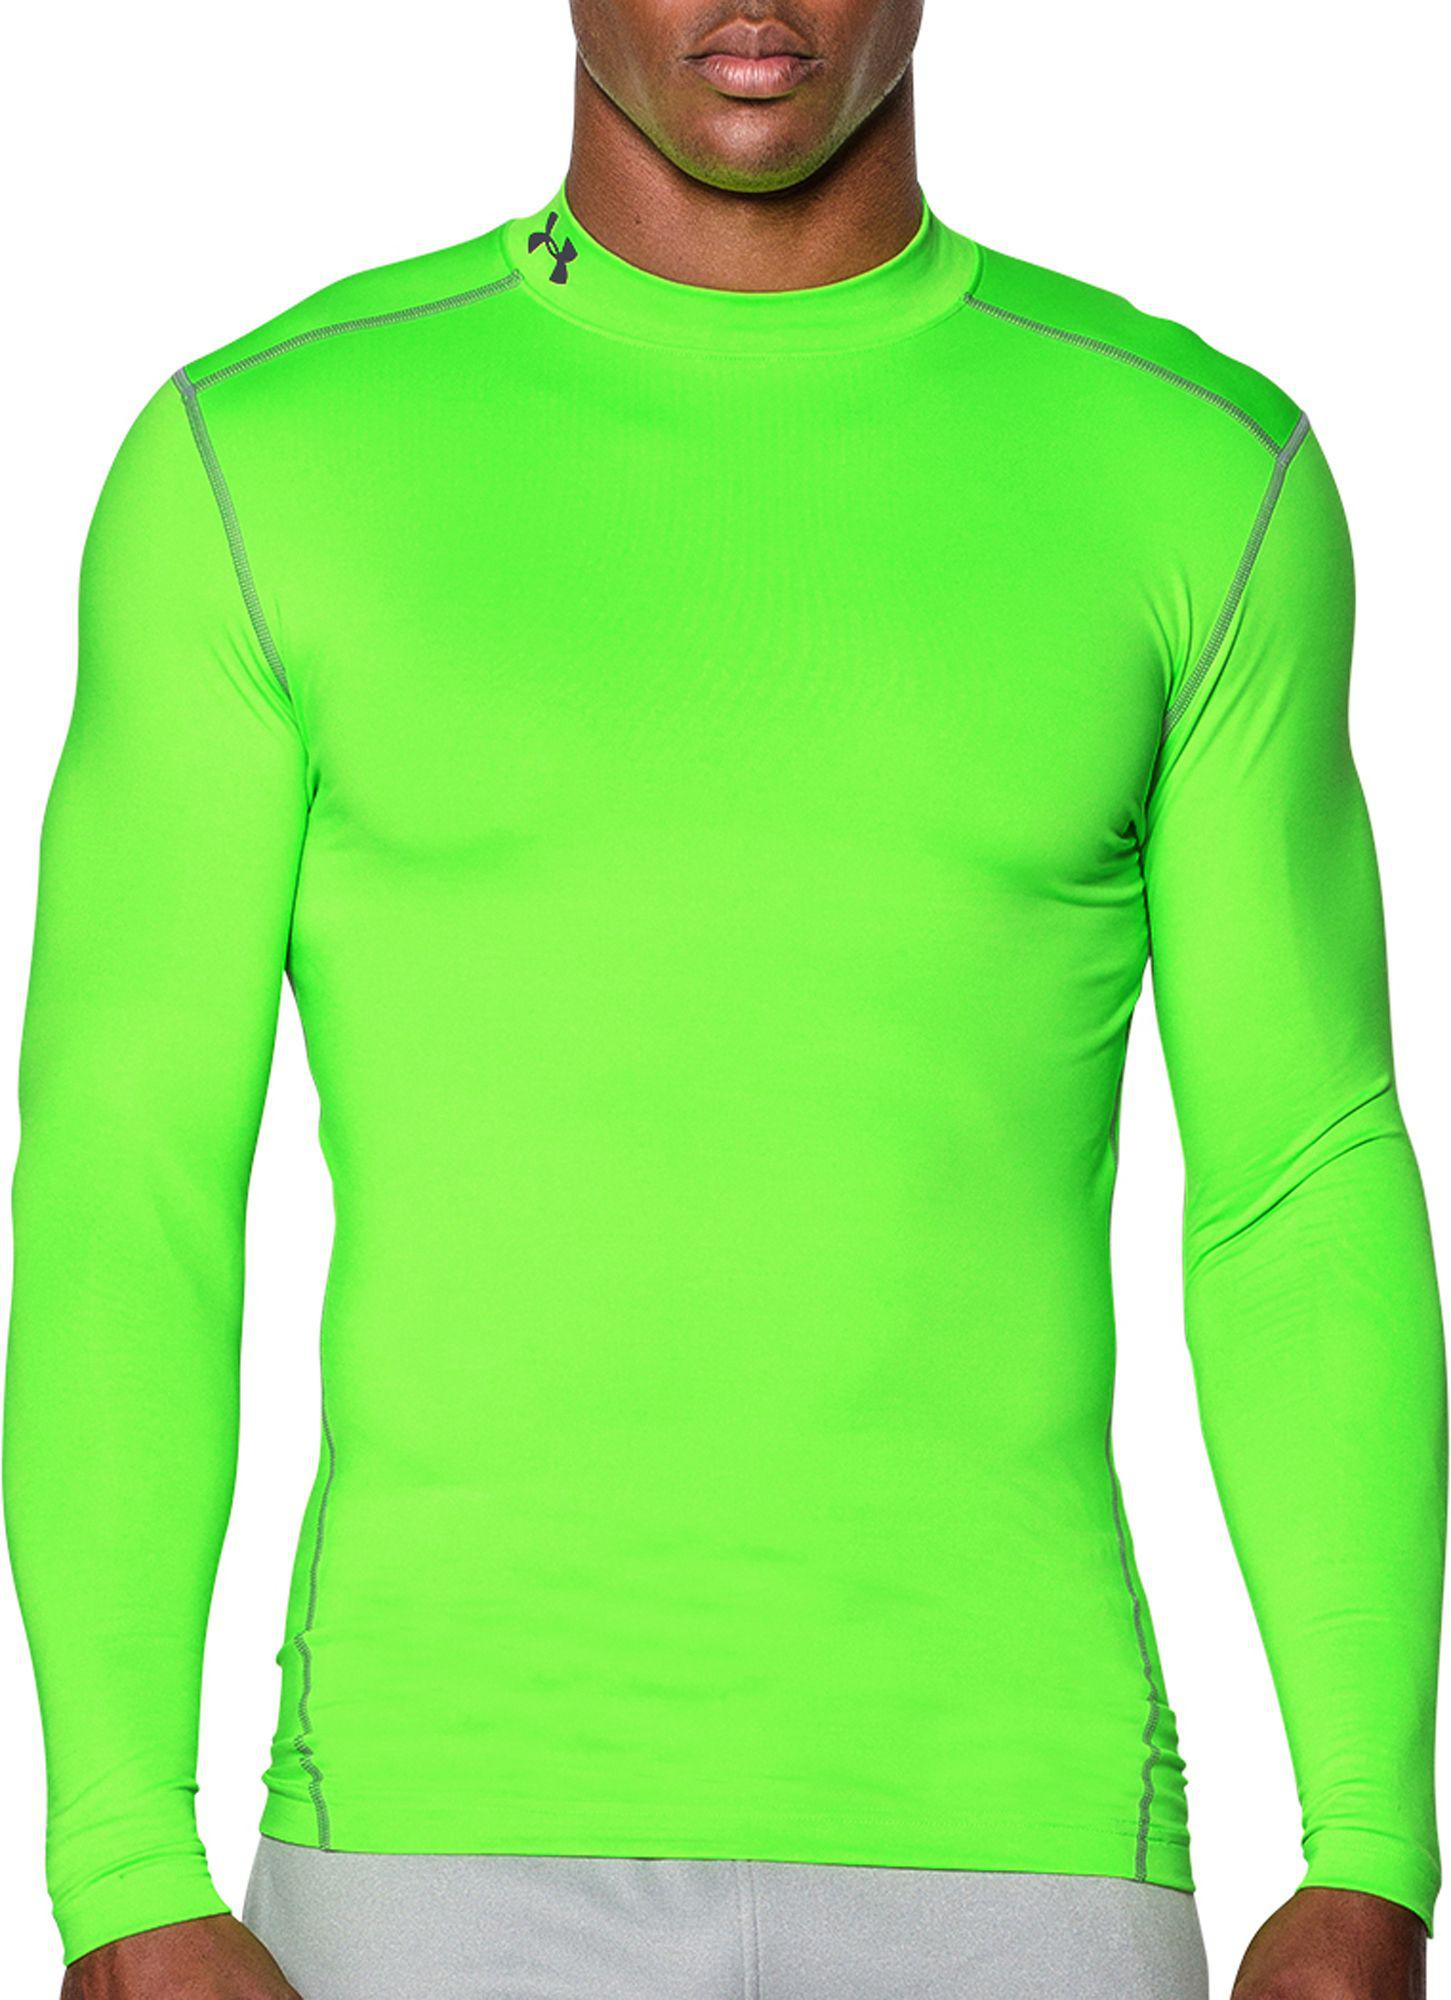 926255314 Under Armour - Green Coldgear Armour Compression Mock Neck Long Sleeve Shirt  for Men - Lyst